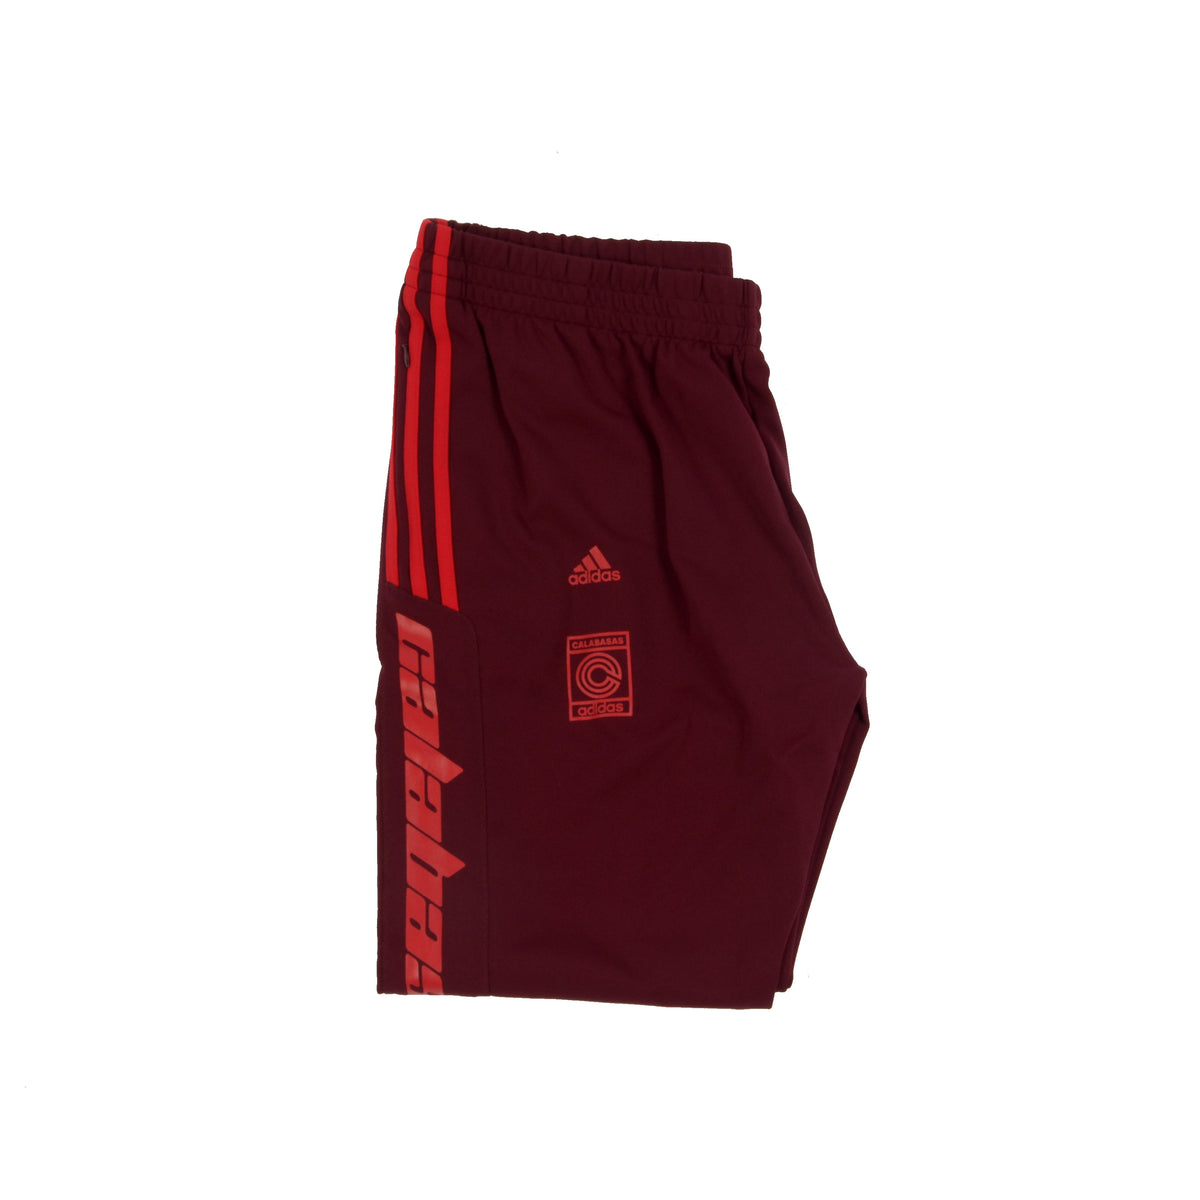 989159e32bb4 Adidas Yeezy Calabasas Track Pants – Hyped Commodity